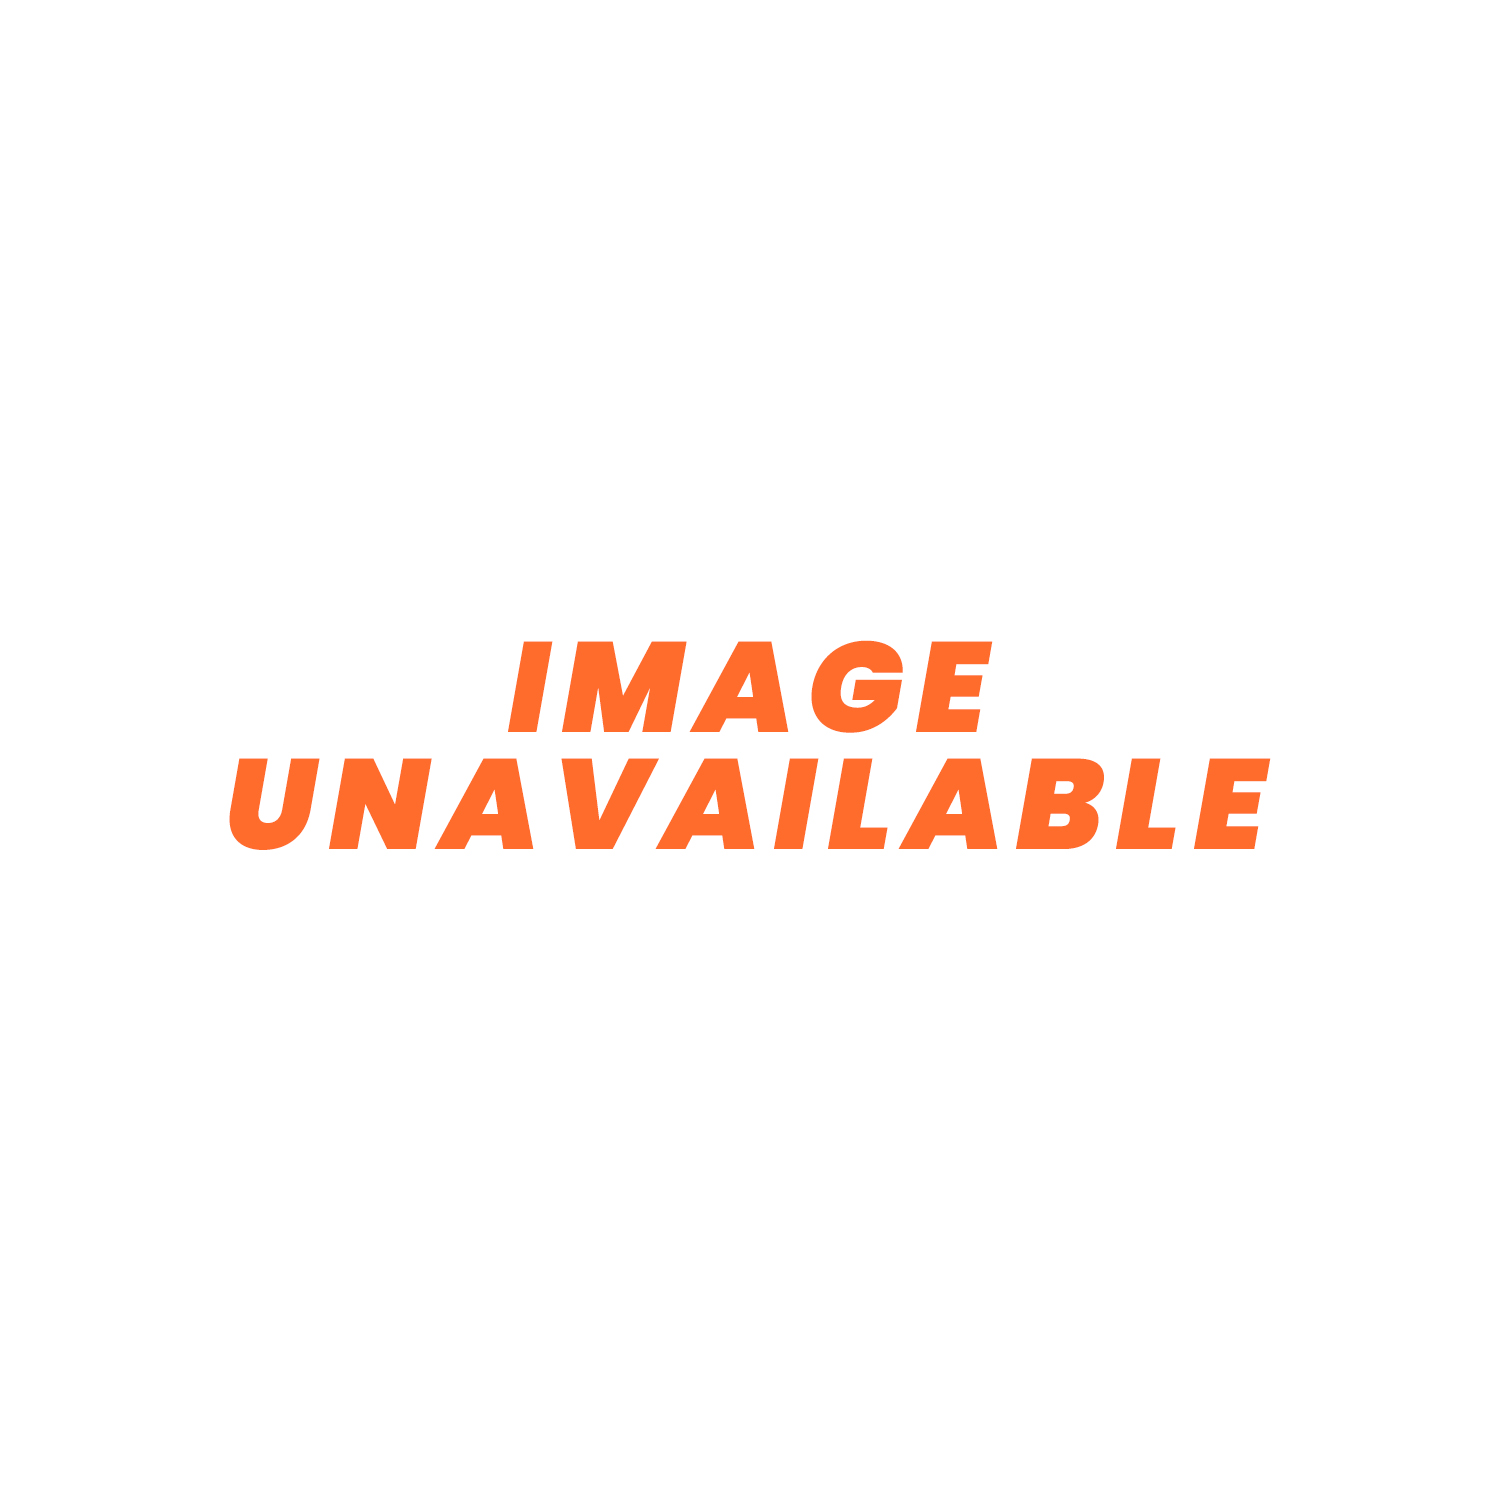 "PAP Hot Air Ducting - 80mm (3.15"") ID x1m"